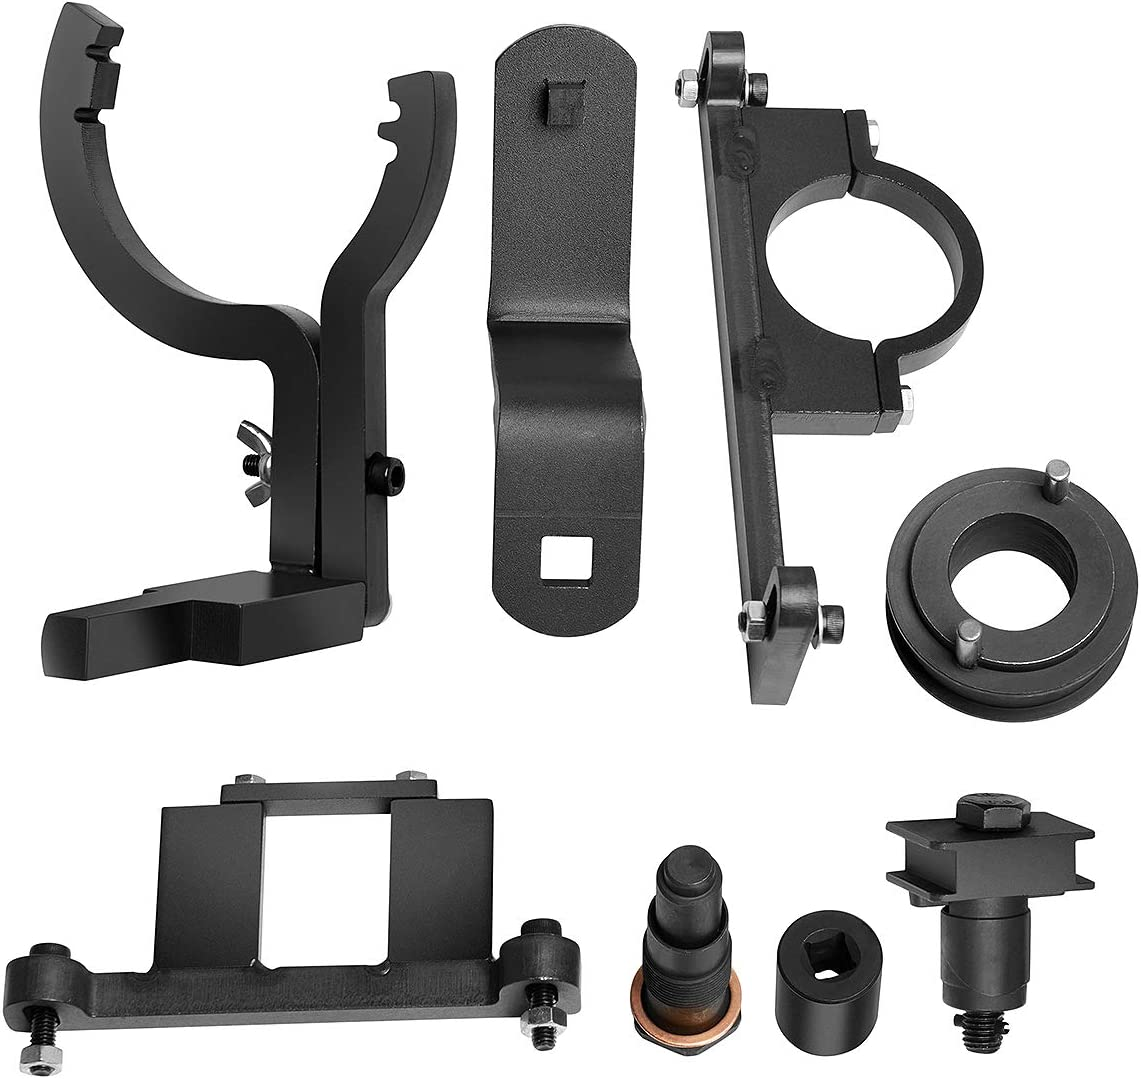 AZKONE Camshaft Timing Tool kit is Suitable for Ford Explorer Mustang Ranger Mazda B4000 Compatible with 4.0L V6